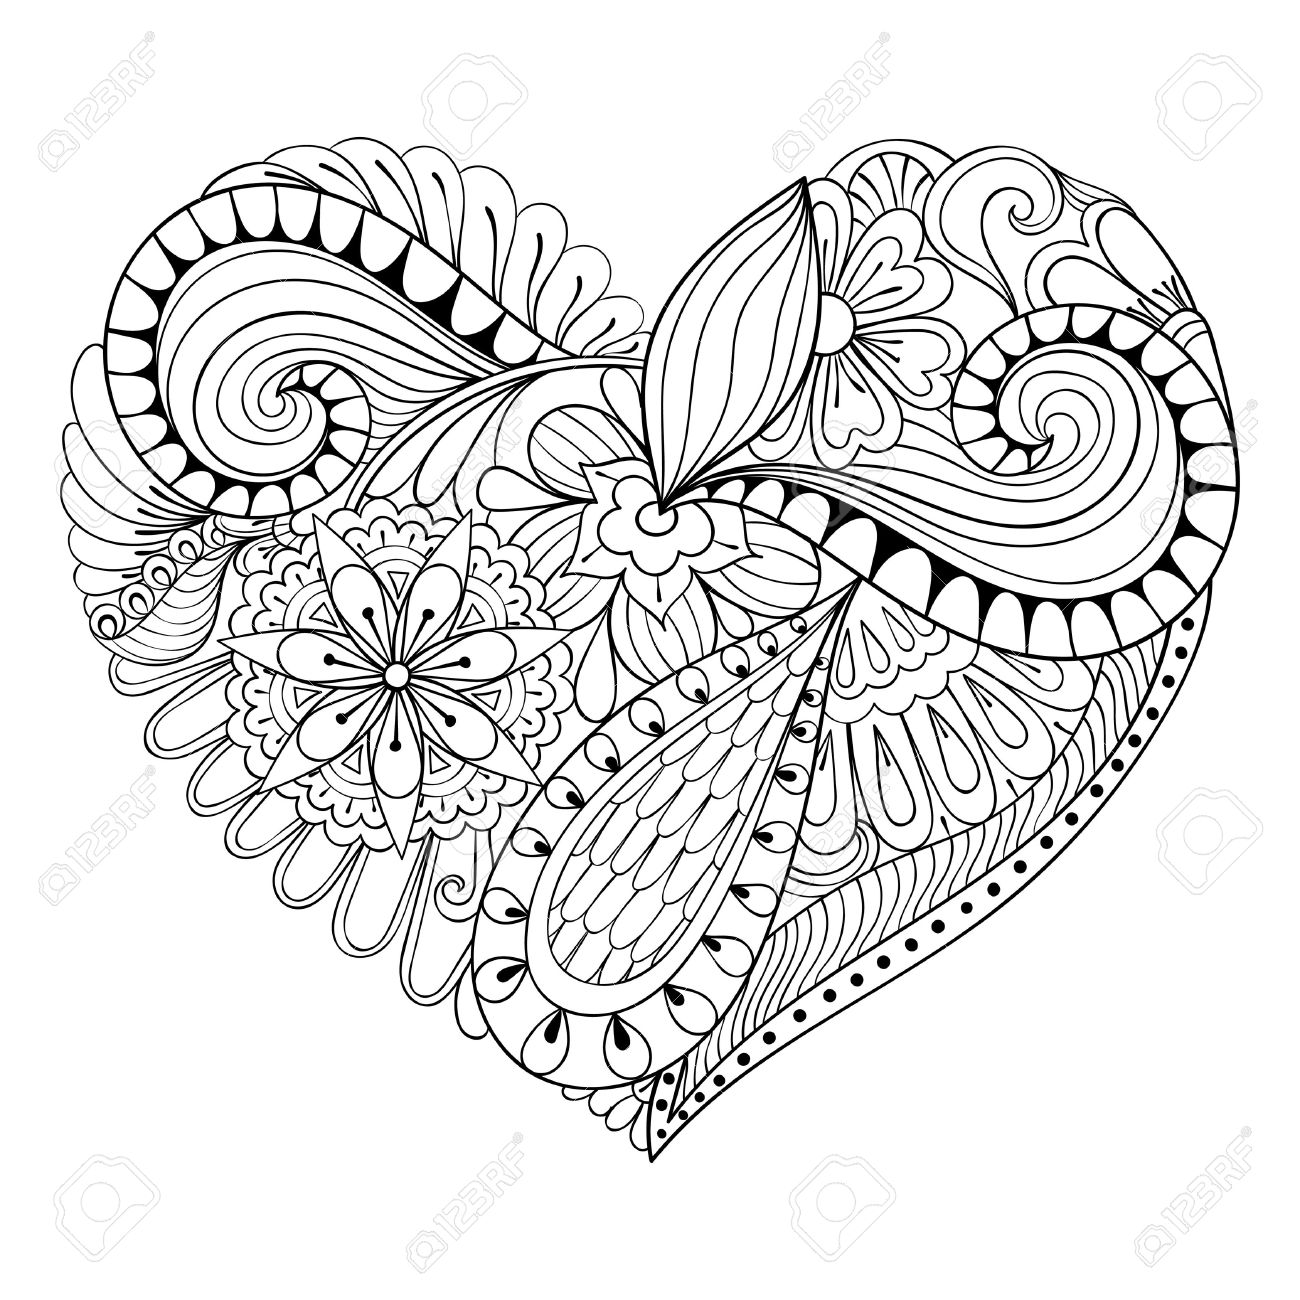 Artistic floral doodle heart in zentangle style for adult coloring..